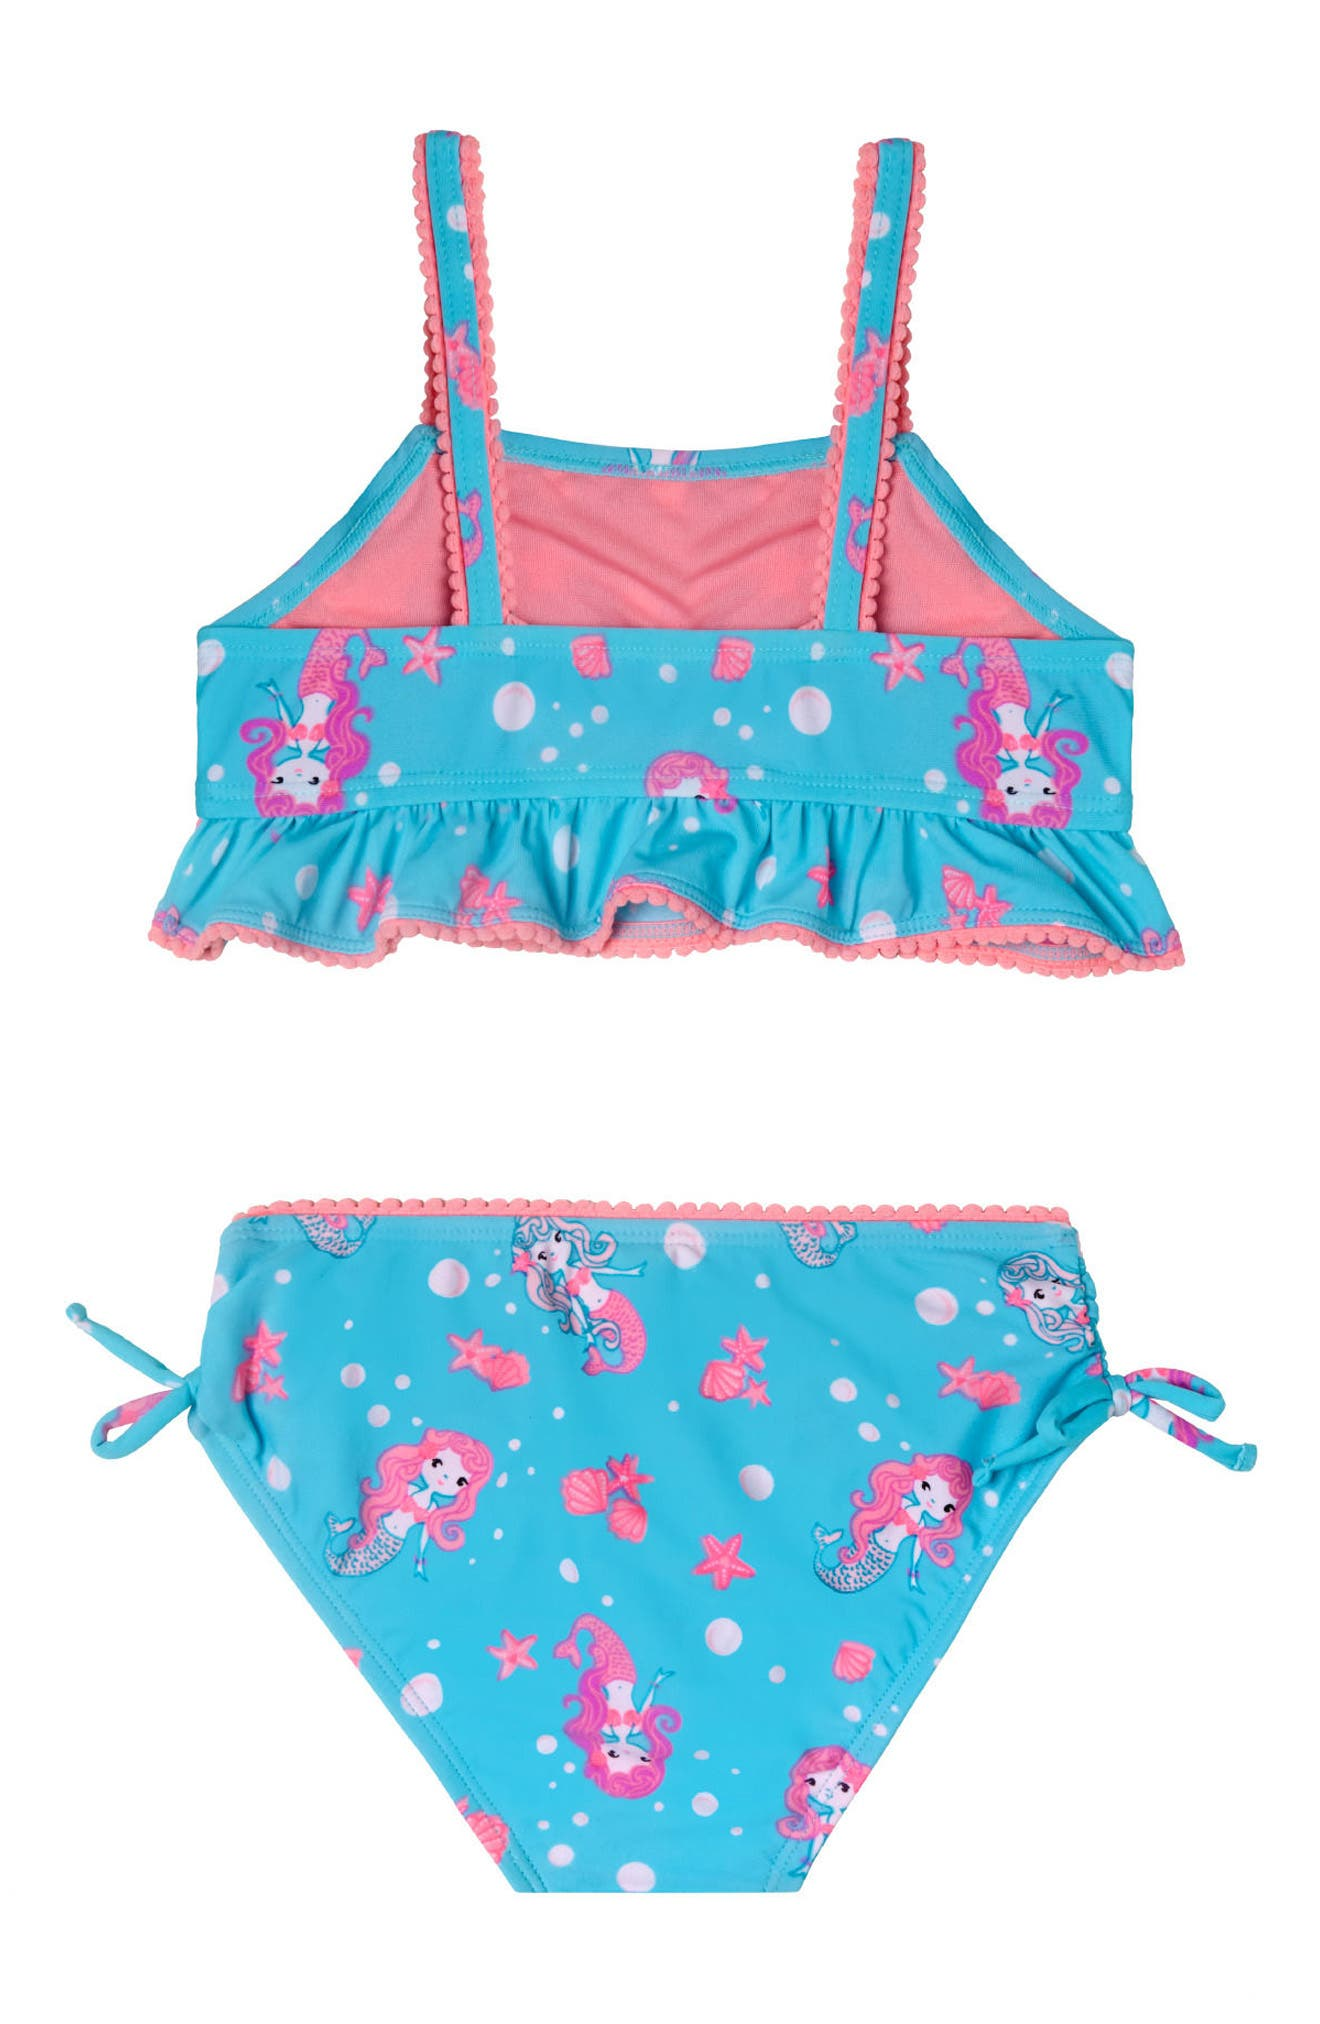 Mermaid Crush Two-Piece Swimsuit,                             Alternate thumbnail 2, color,                             405